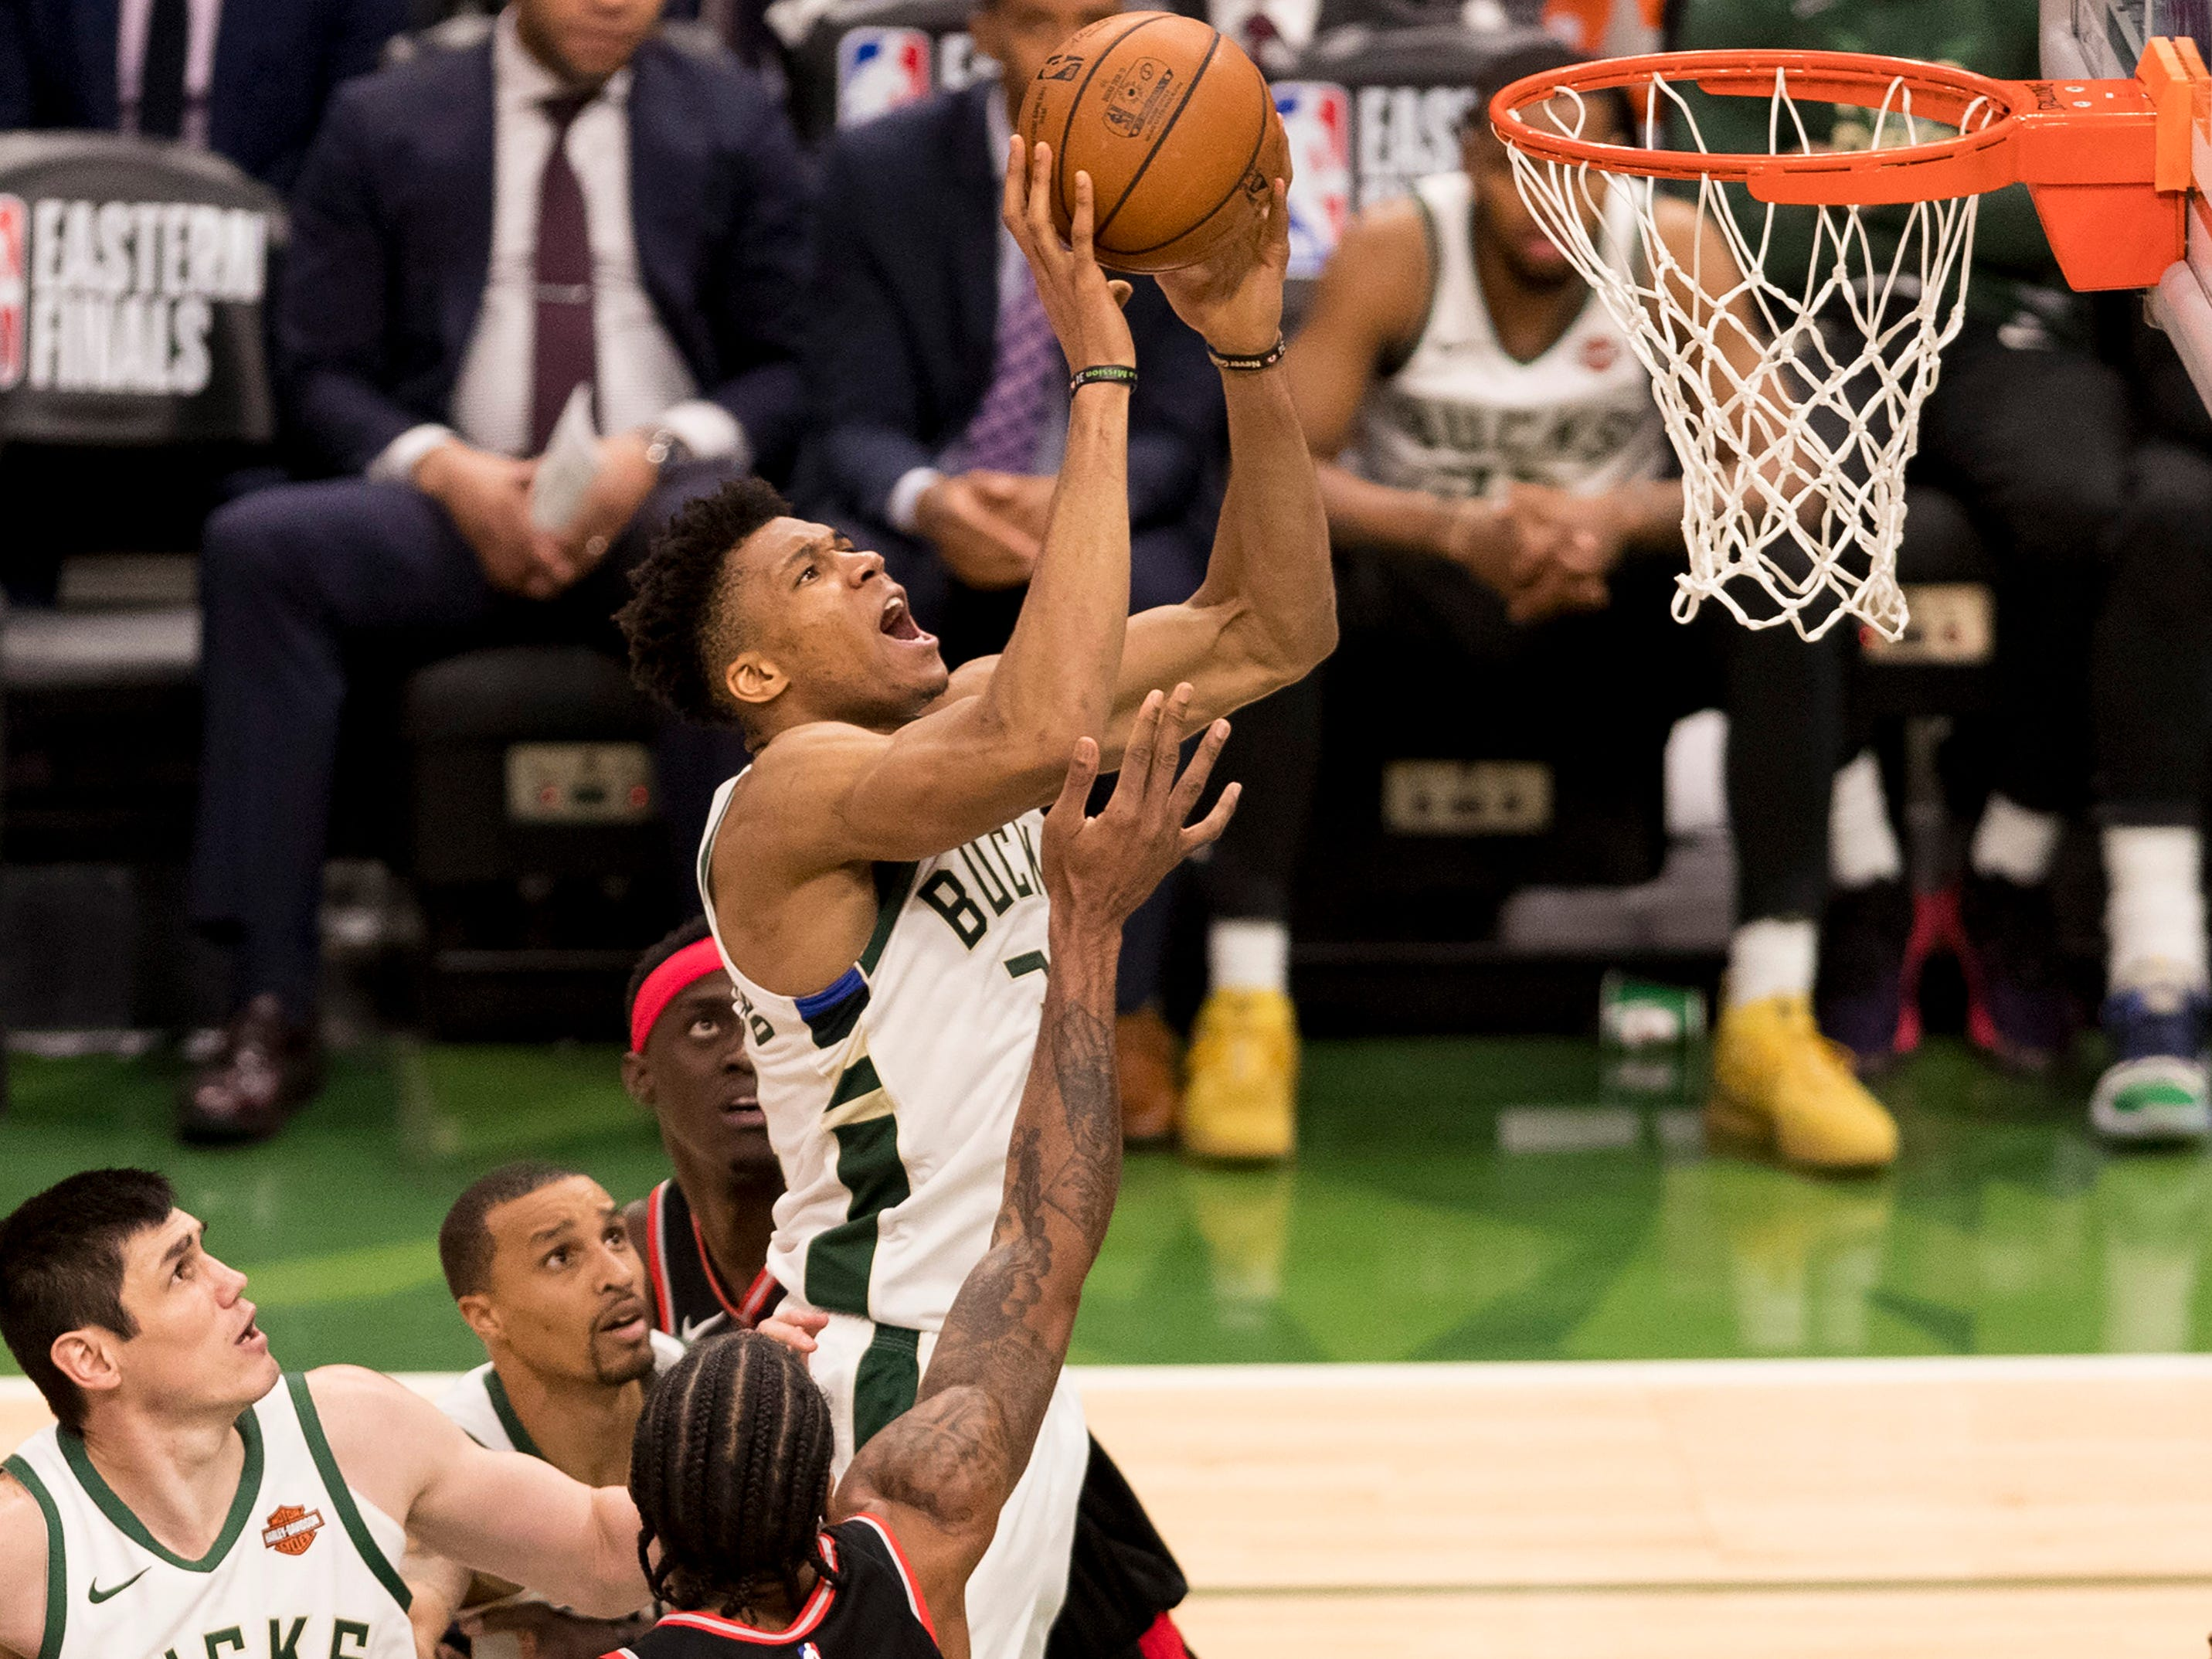 May 17: Bucks forward Giannis Antetokounmpo (34) drives to the bucket during Game 2 against the Raptors in Milwaukee.